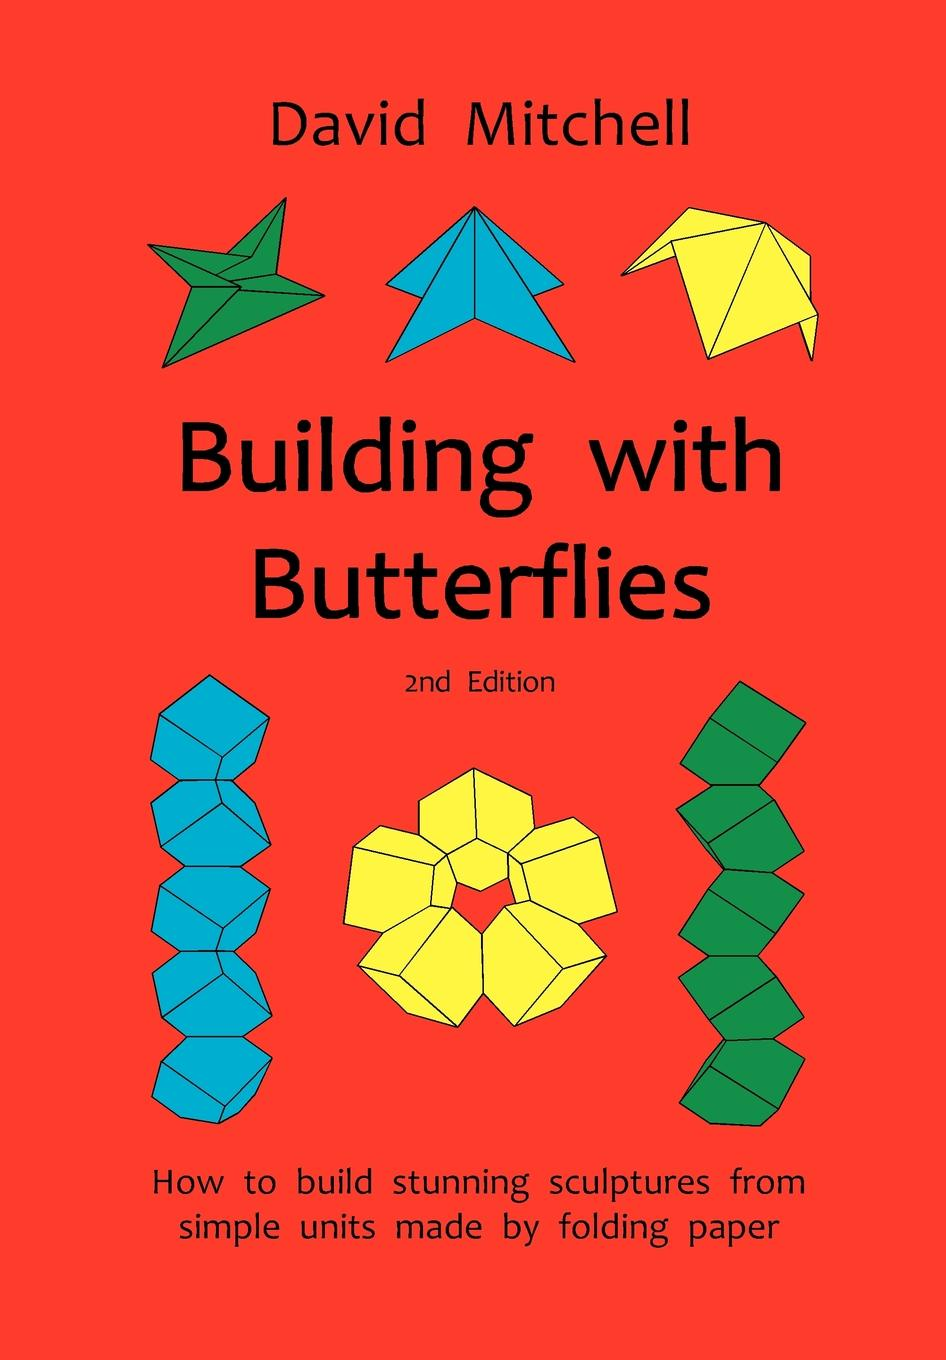 David Mitchell Building with Butterflies press out and colour butterflies